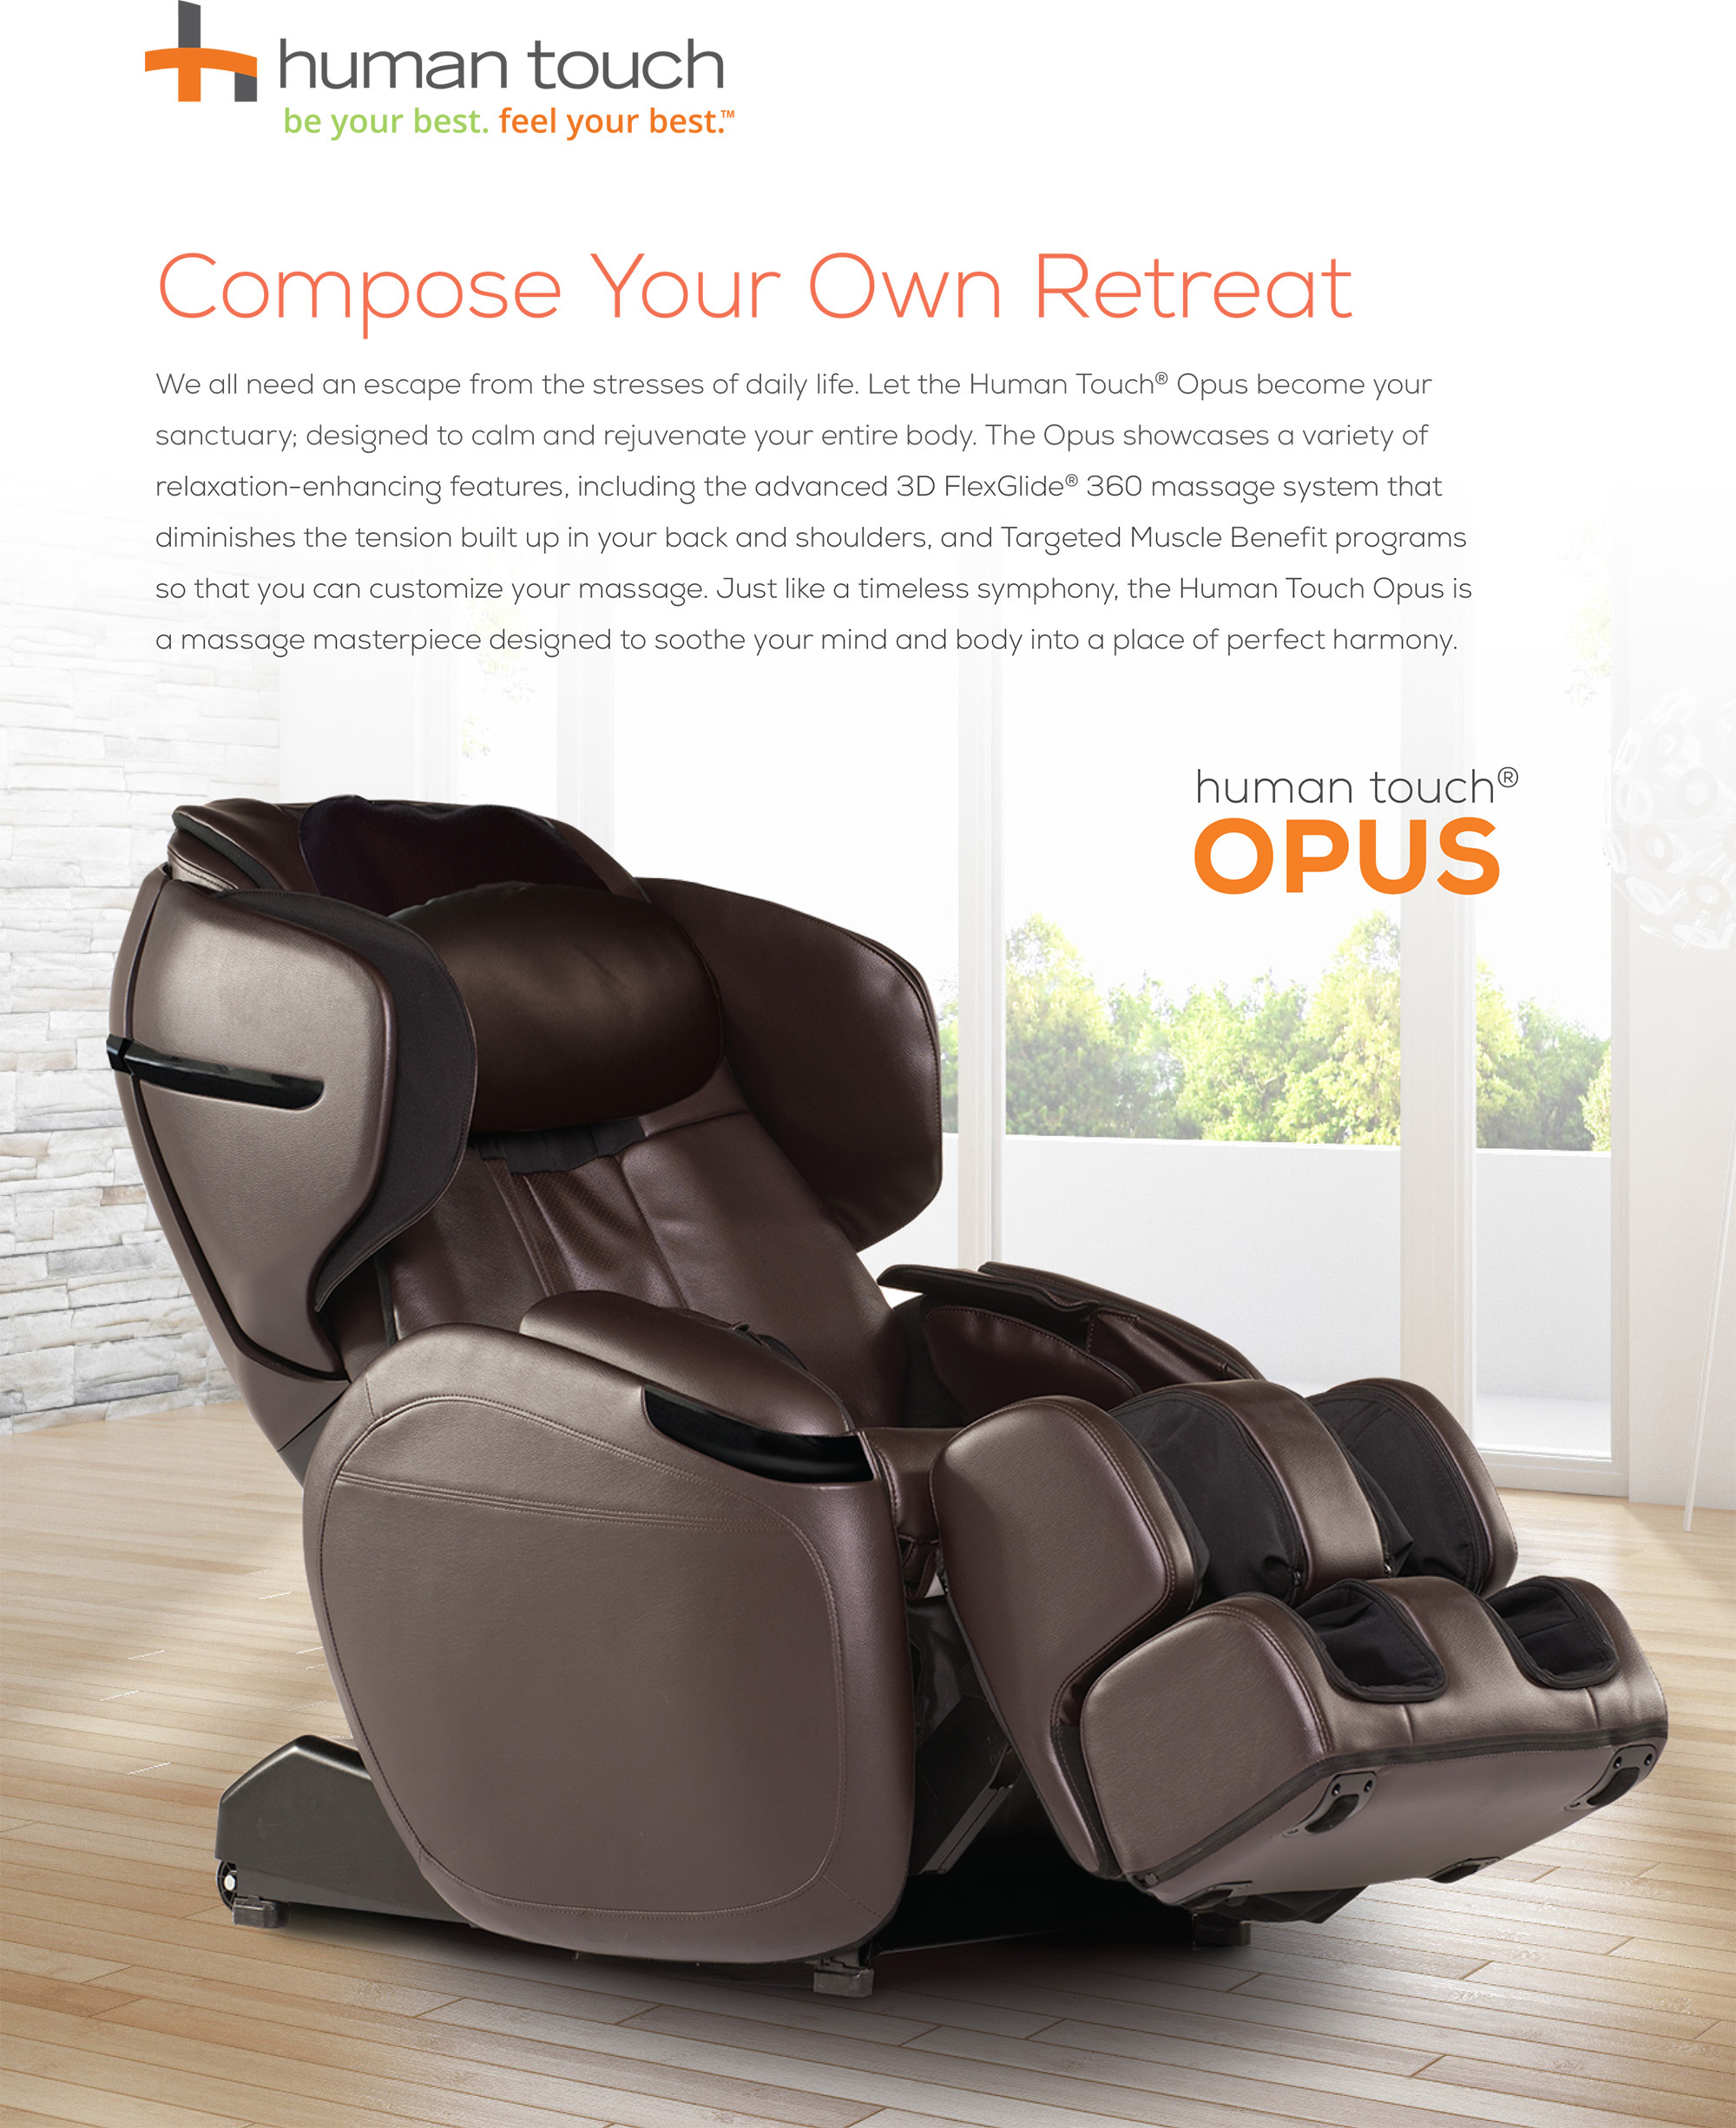 gravity htm back volito zero gray in human backstore recliner zerog massage chair grey touch